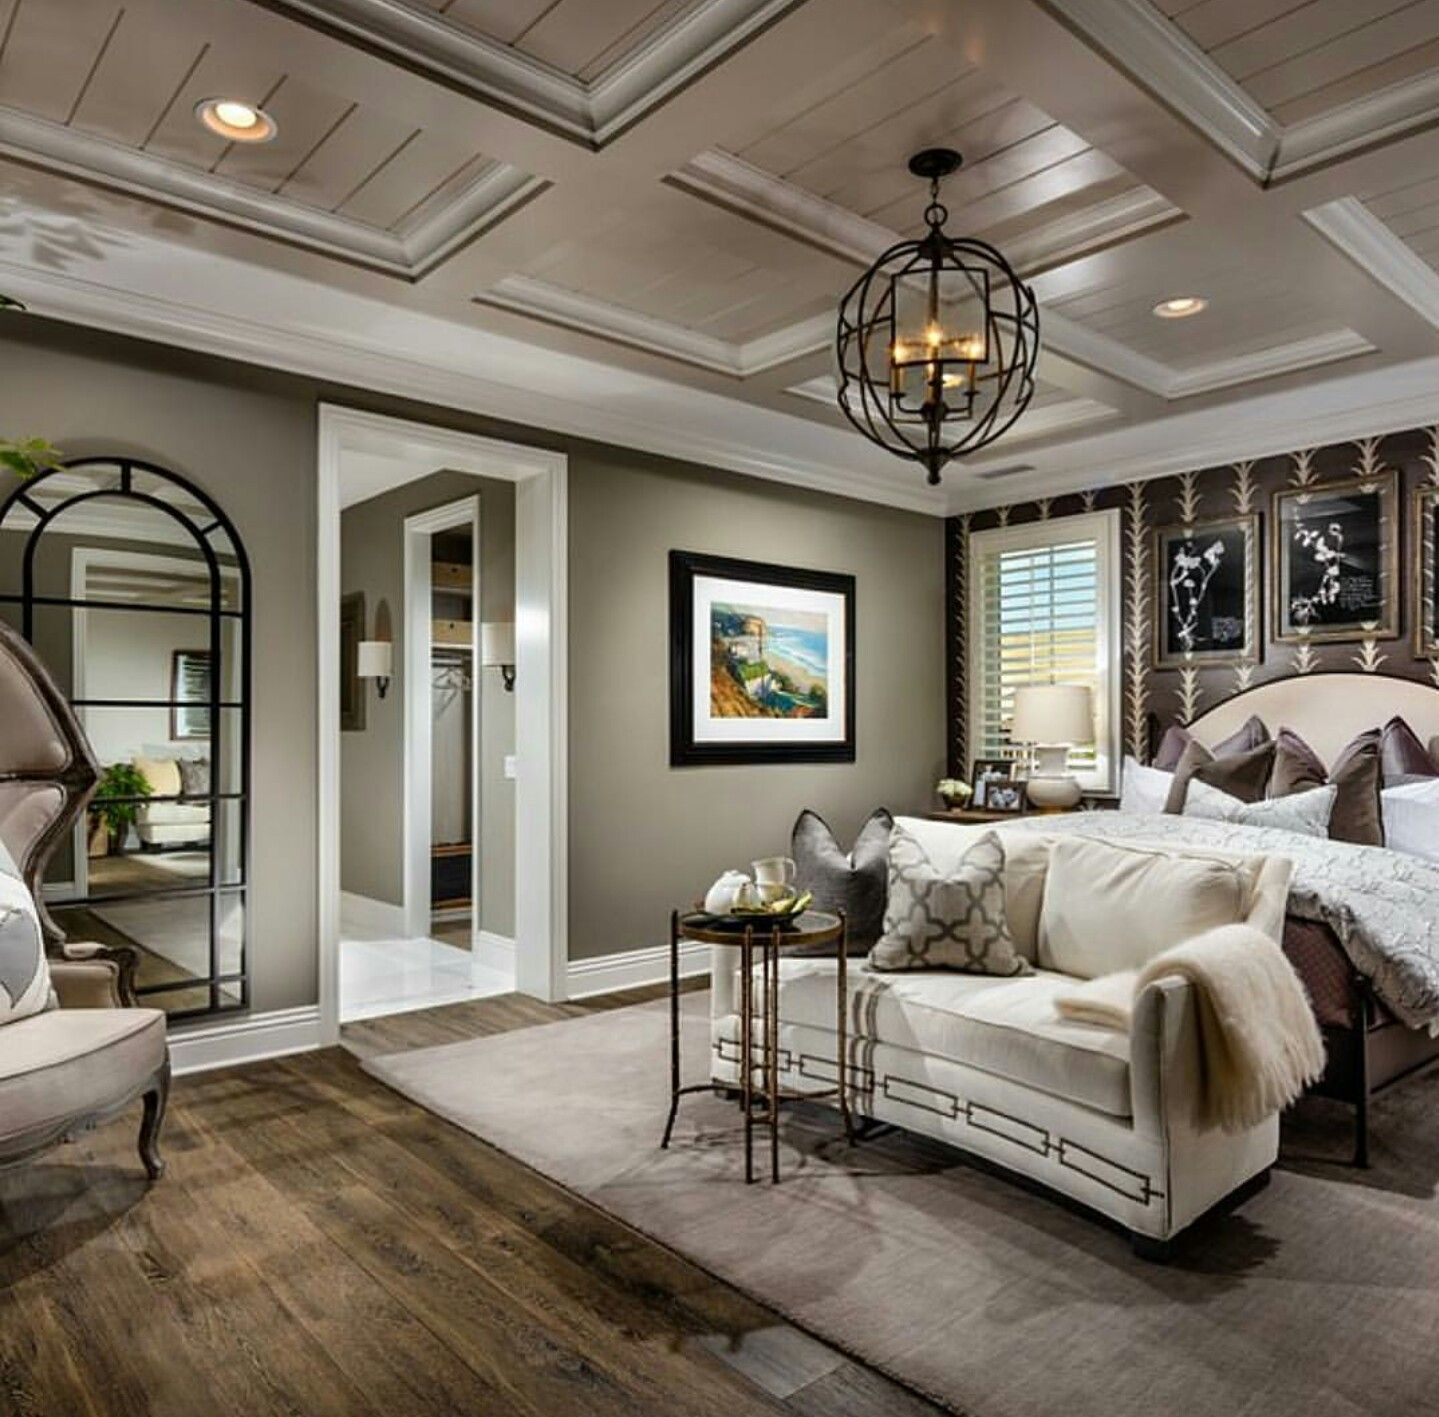 Best Coffered Ceiling In Master Is A Nice Touch Luxury 400 x 300